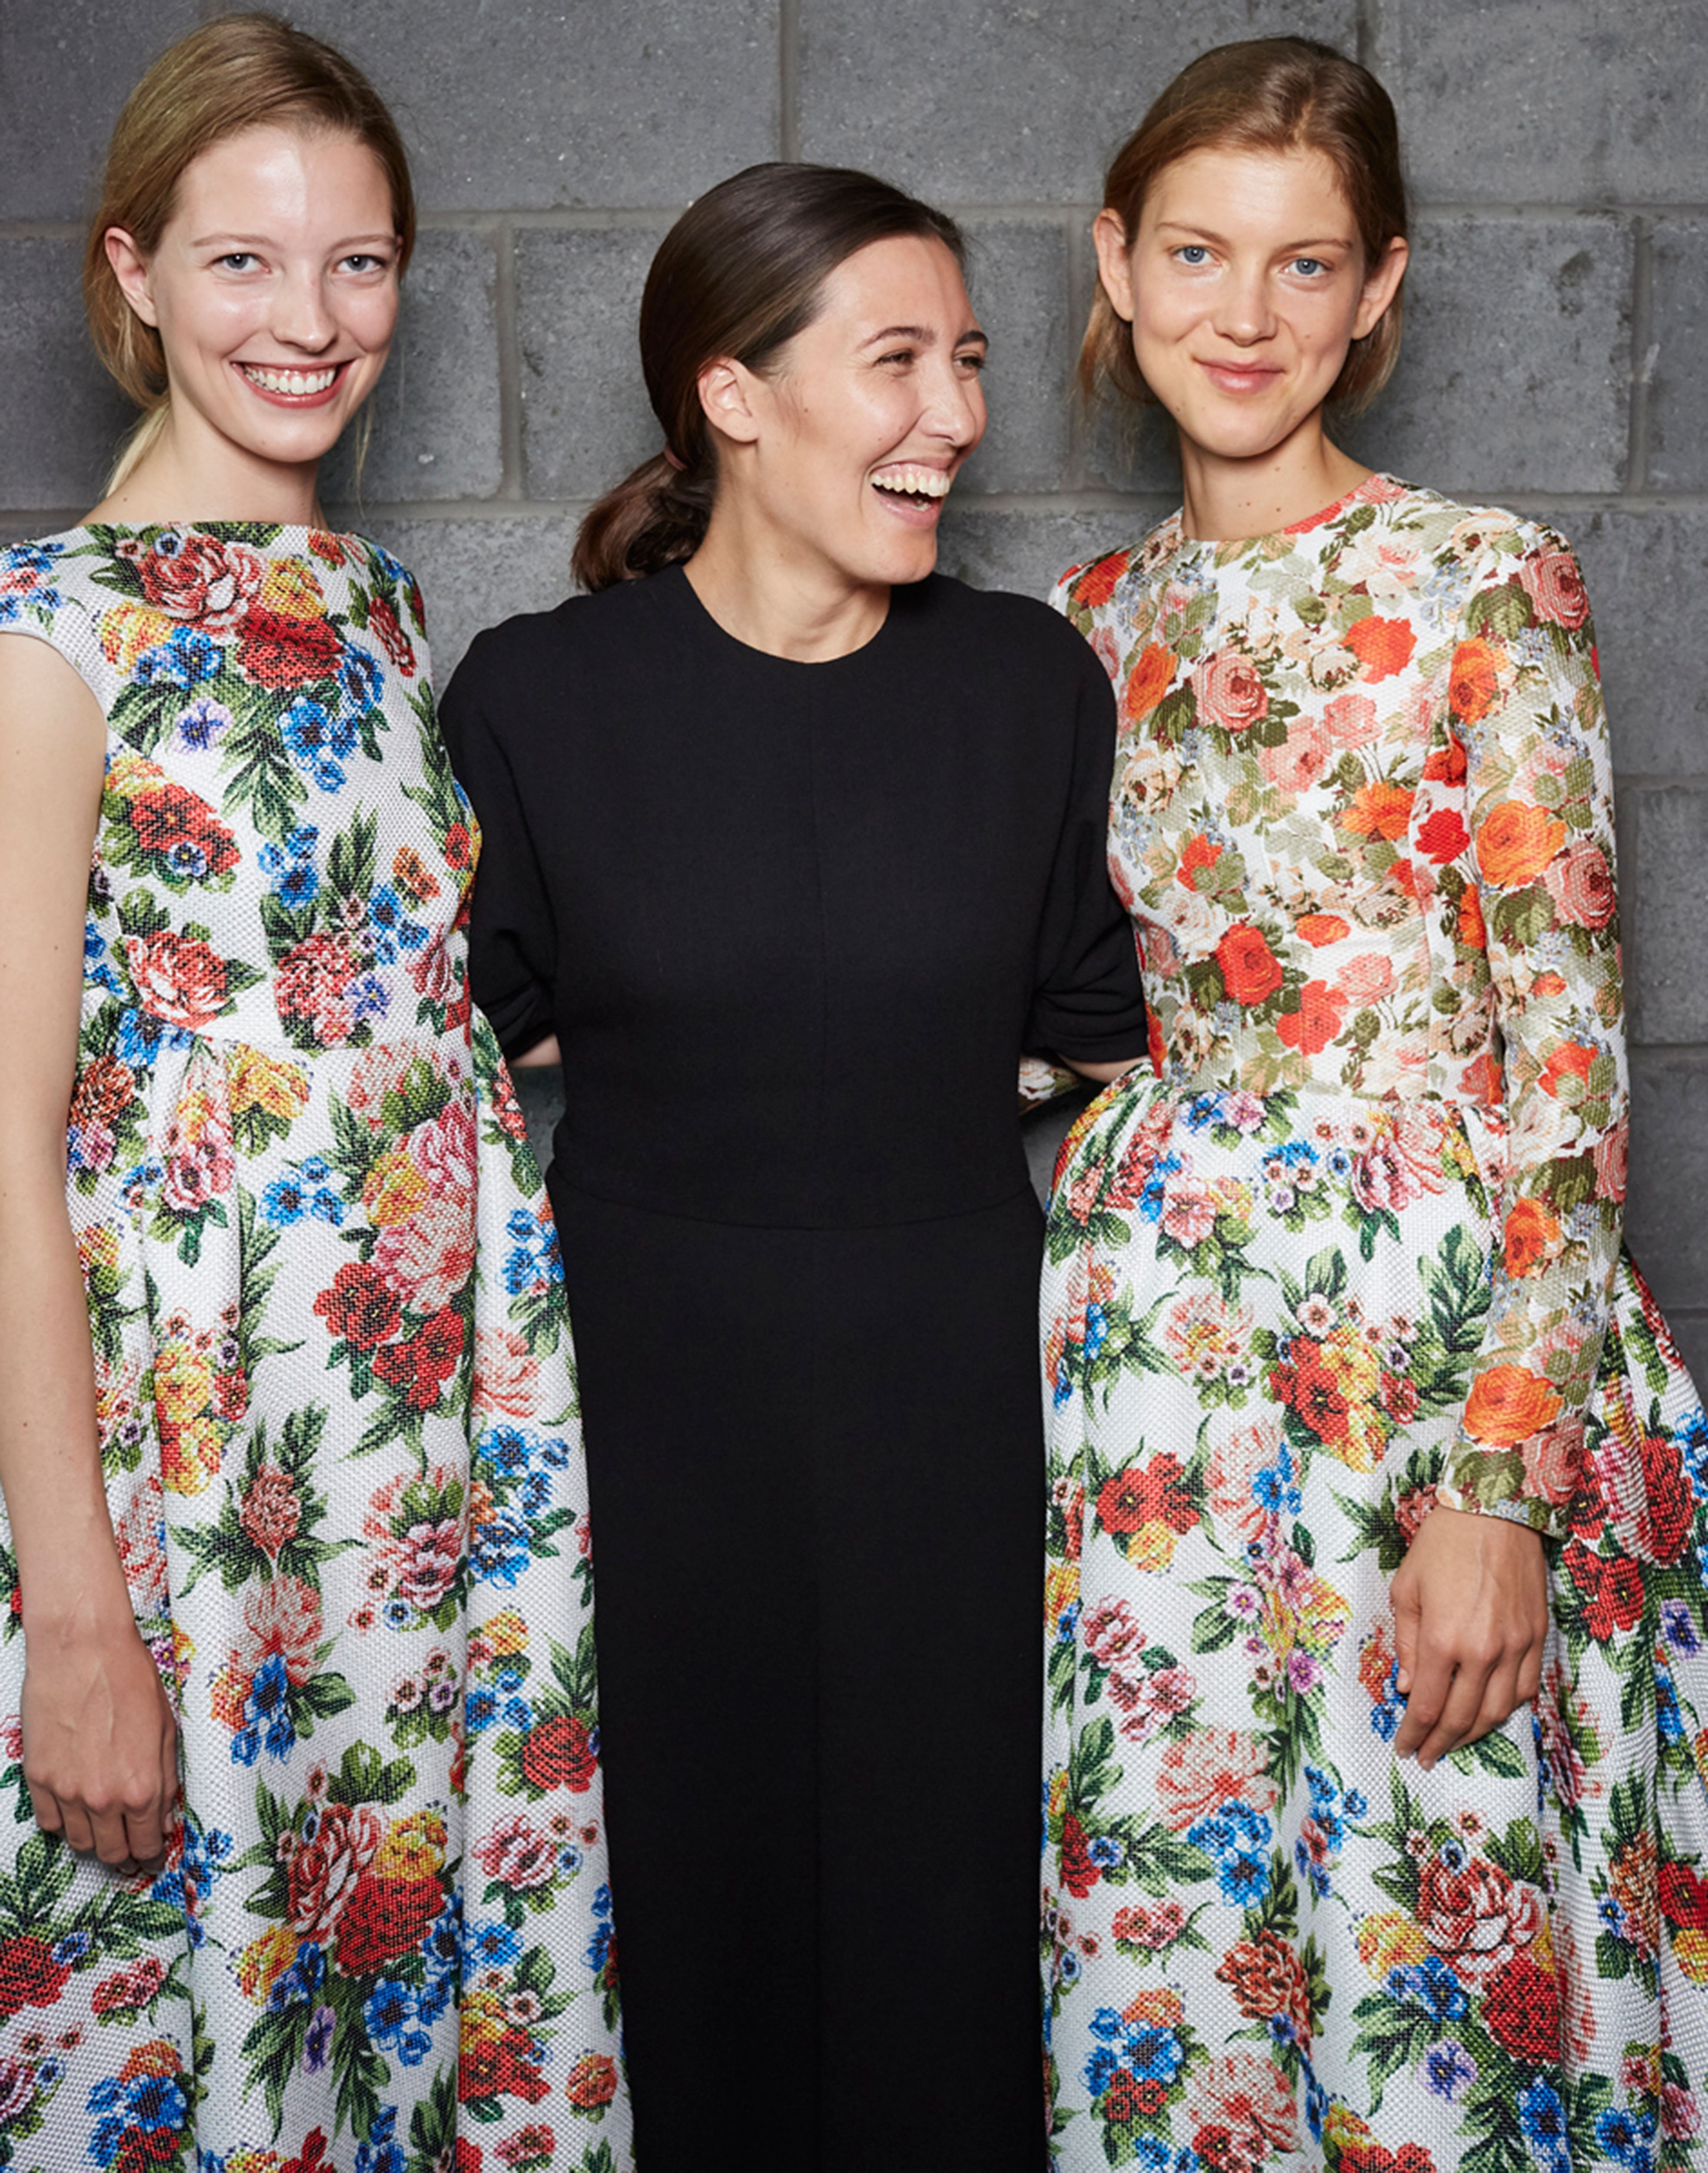 Backstage at London Fashion Week with Emilia Wickstead